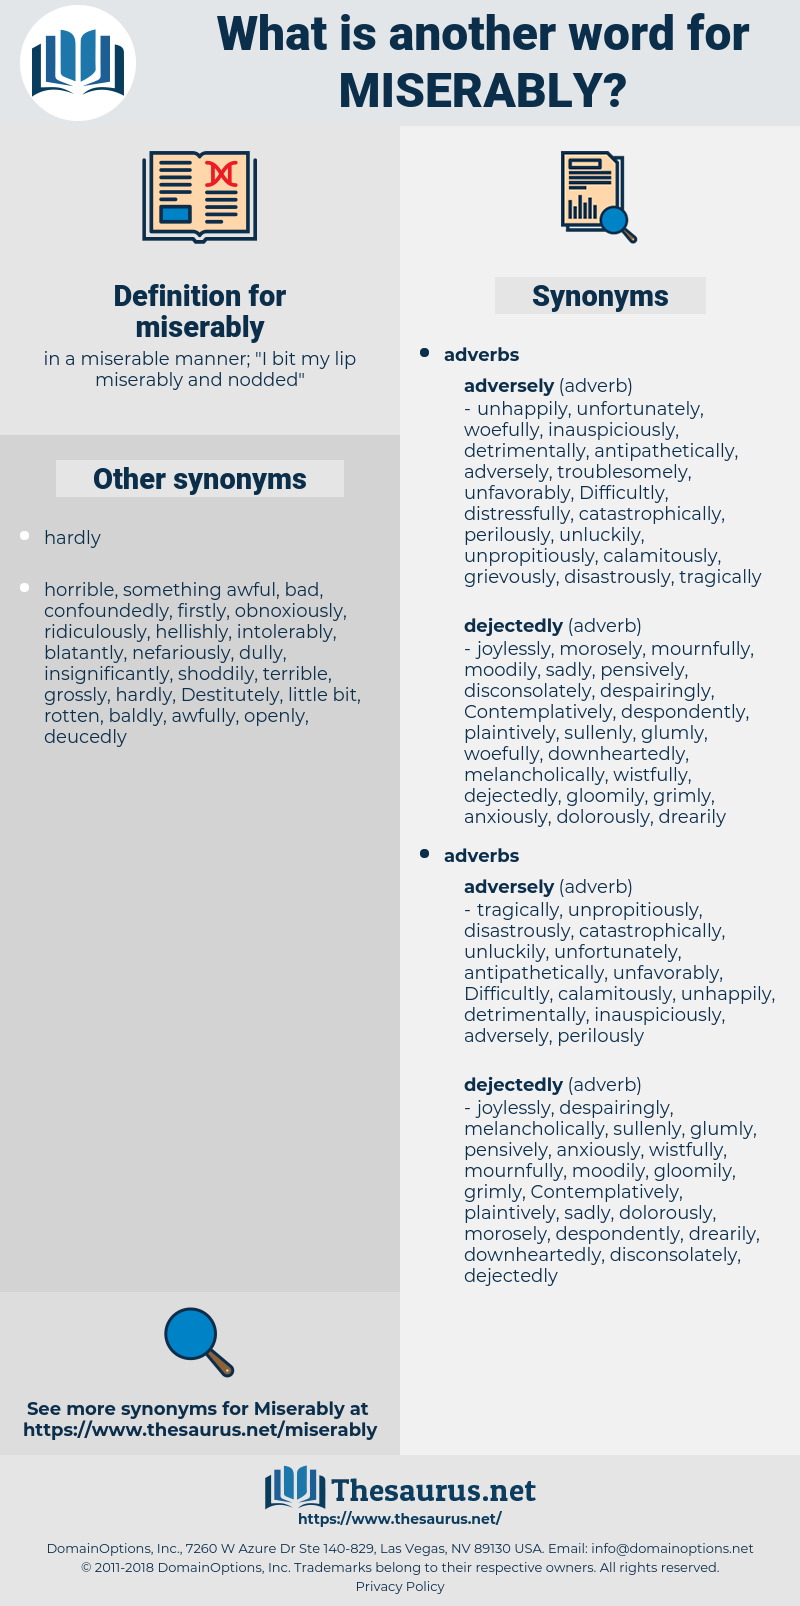 miserably, synonym miserably, another word for miserably, words like miserably, thesaurus miserably